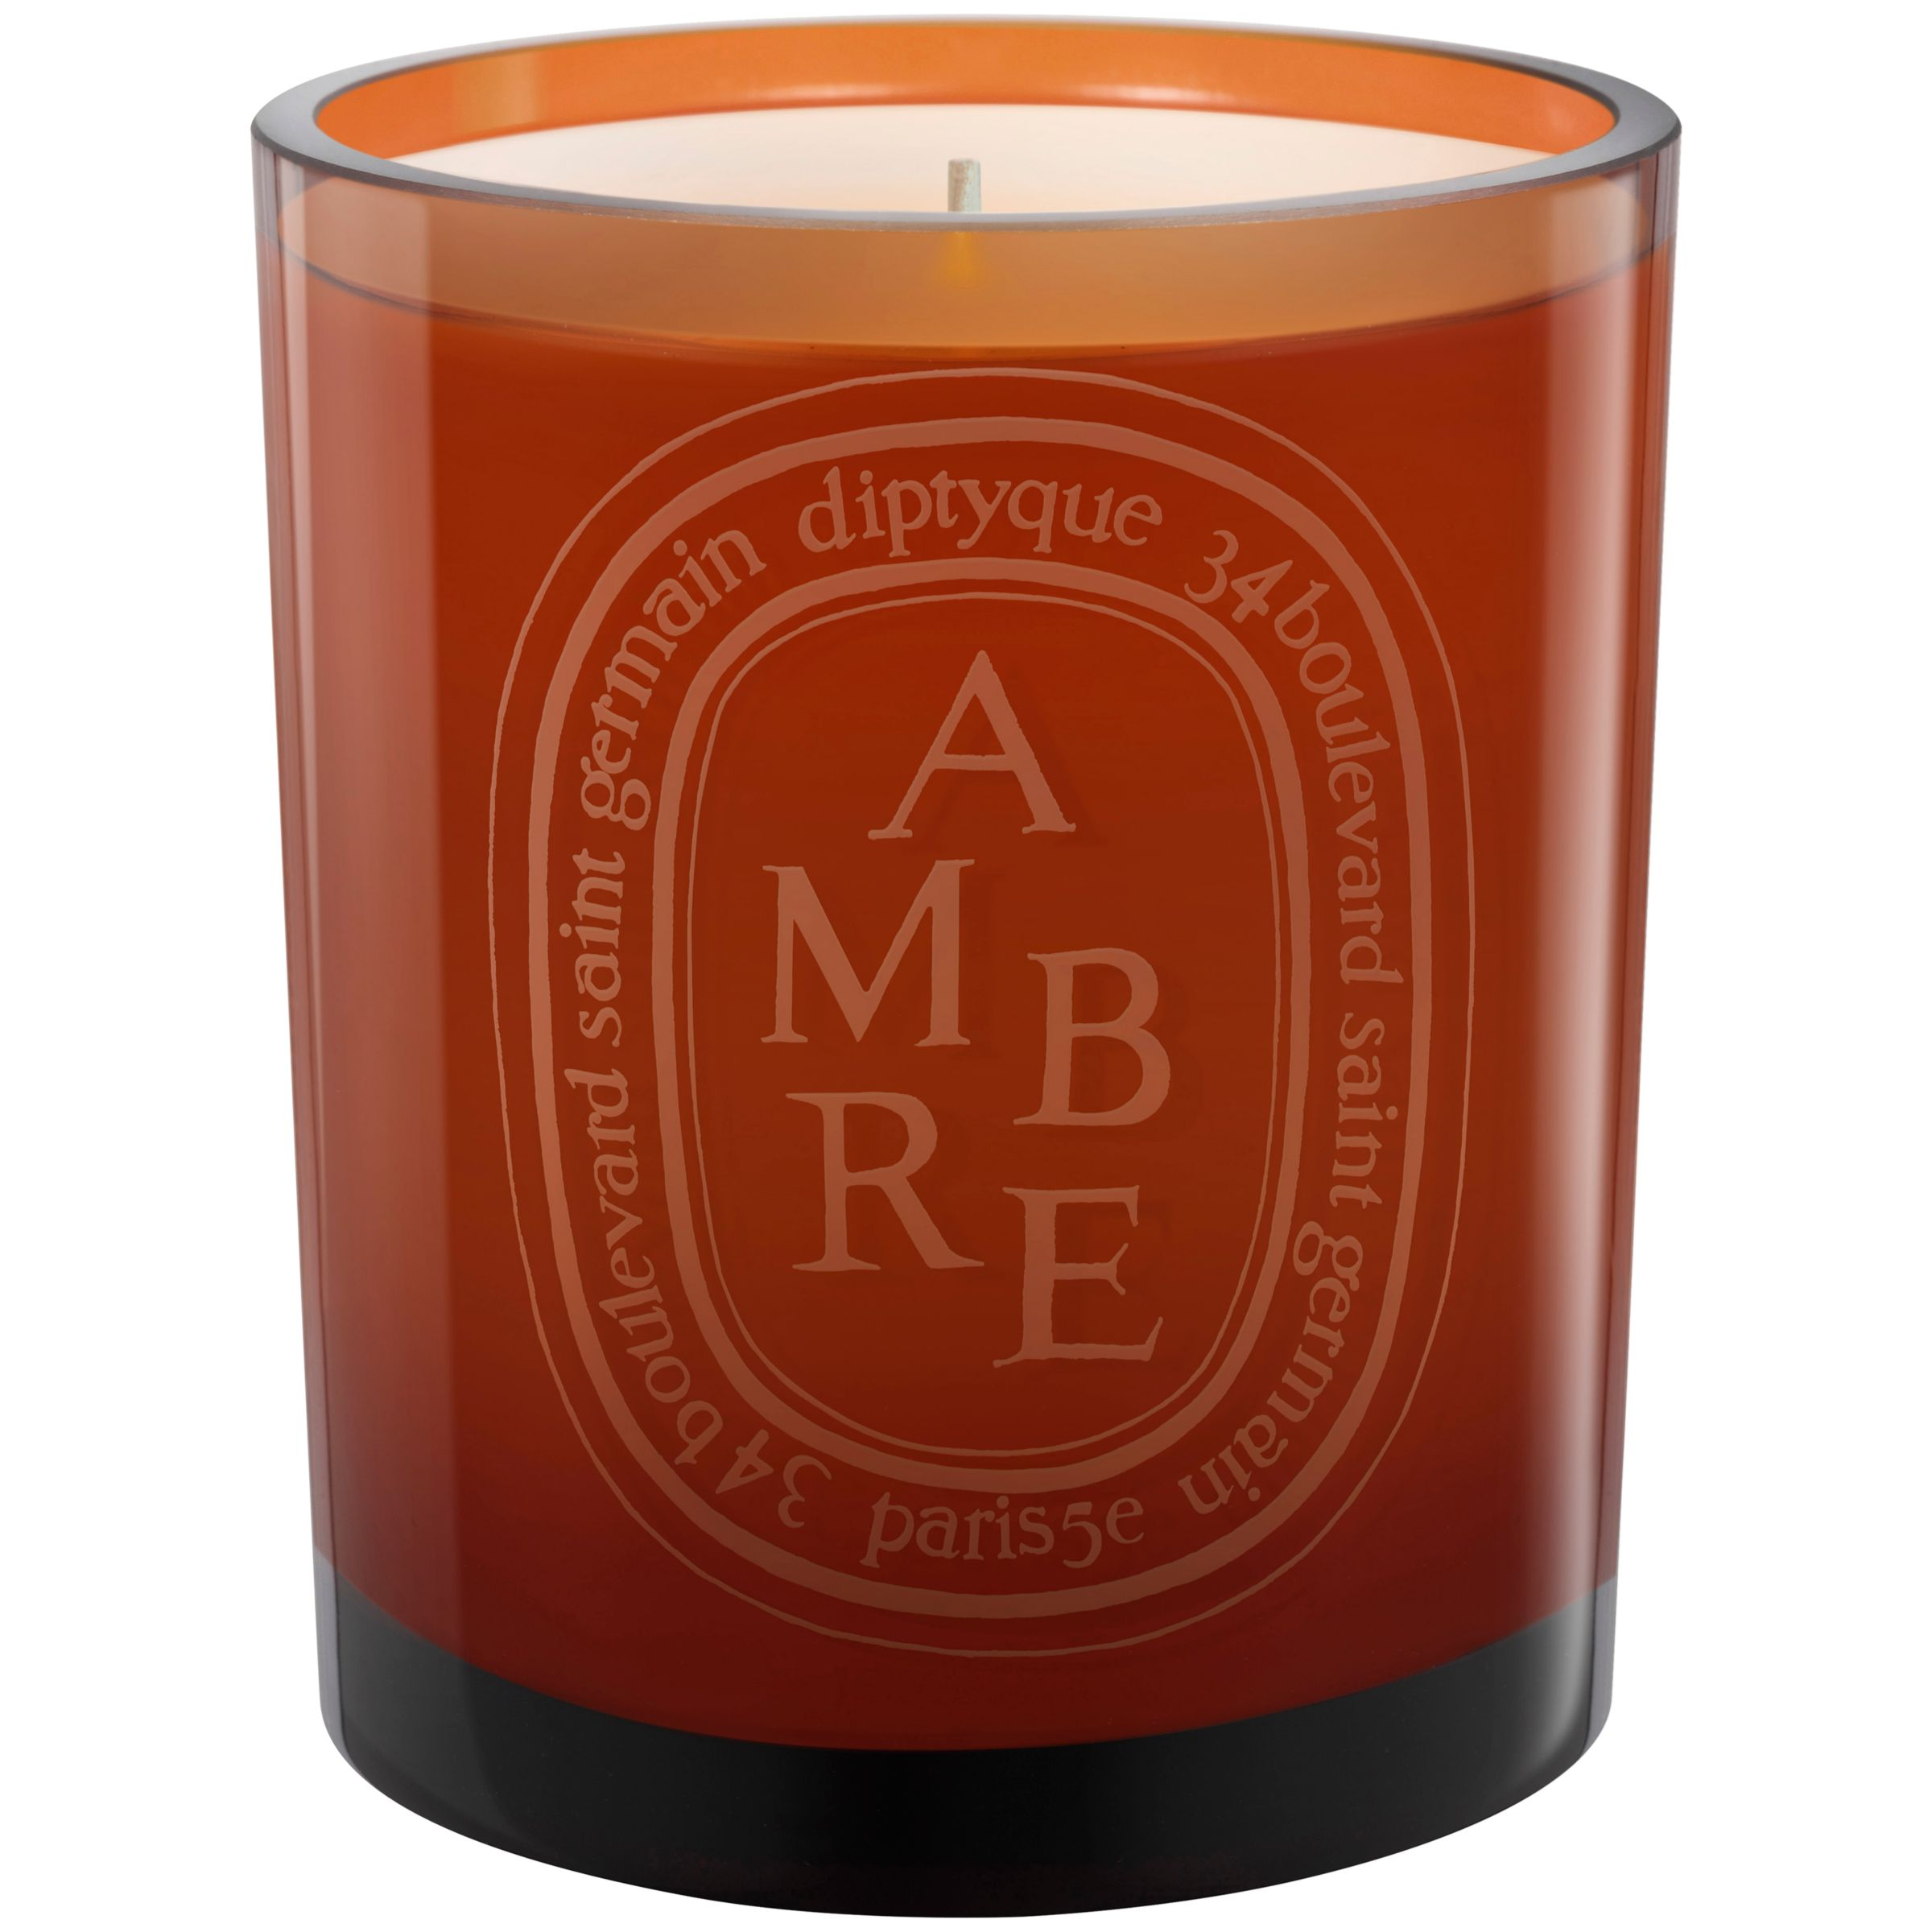 Diptyque Diptyque Ambre Scented Candle, 300g